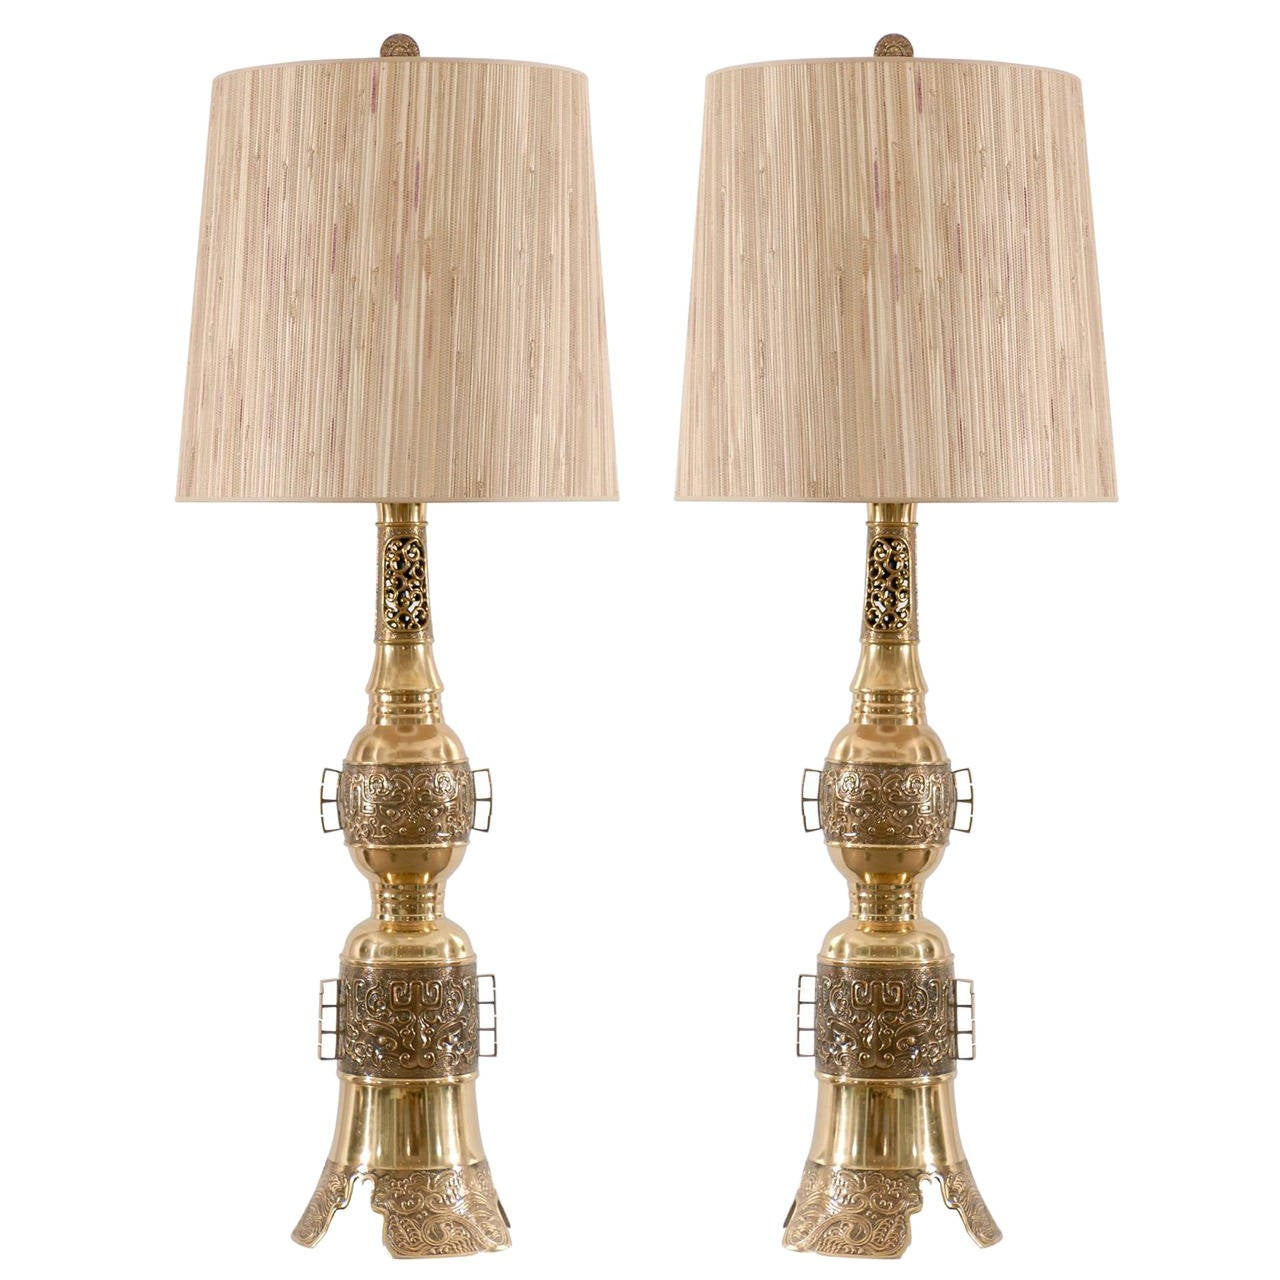 Pair of Asian Brass Lamps in the John Mont Style